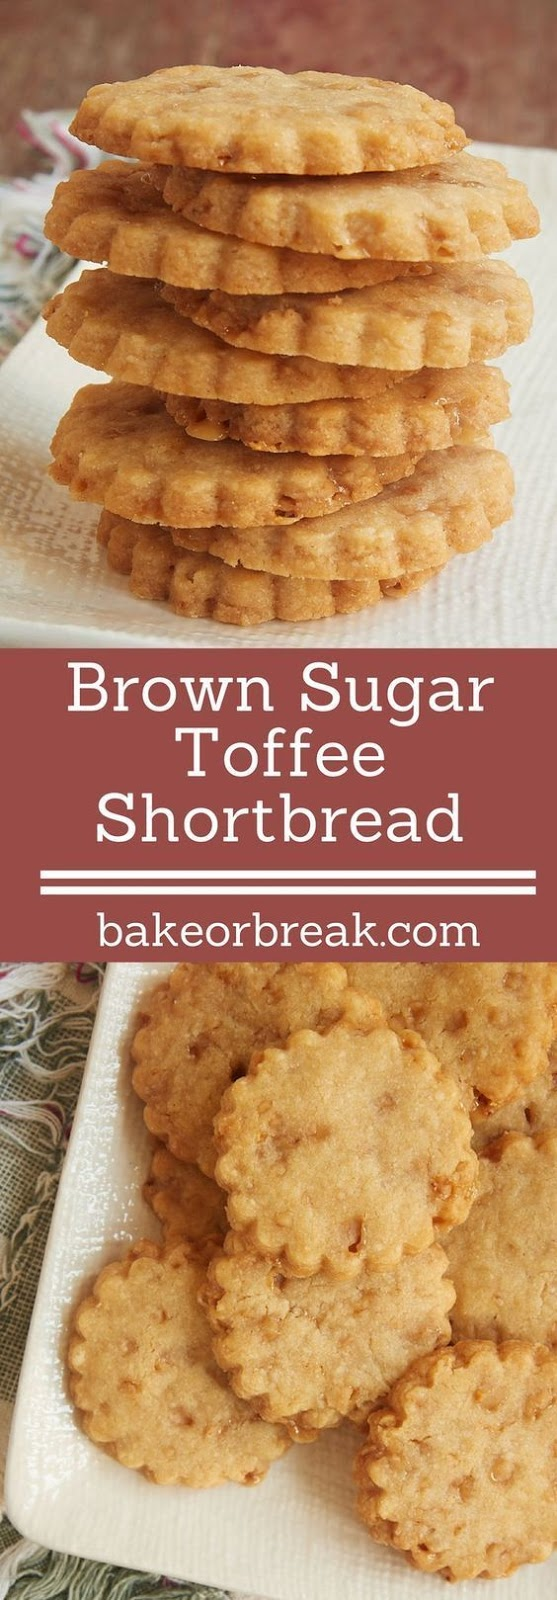 BROWN SUGAR TOFFEE SHORTBREAD